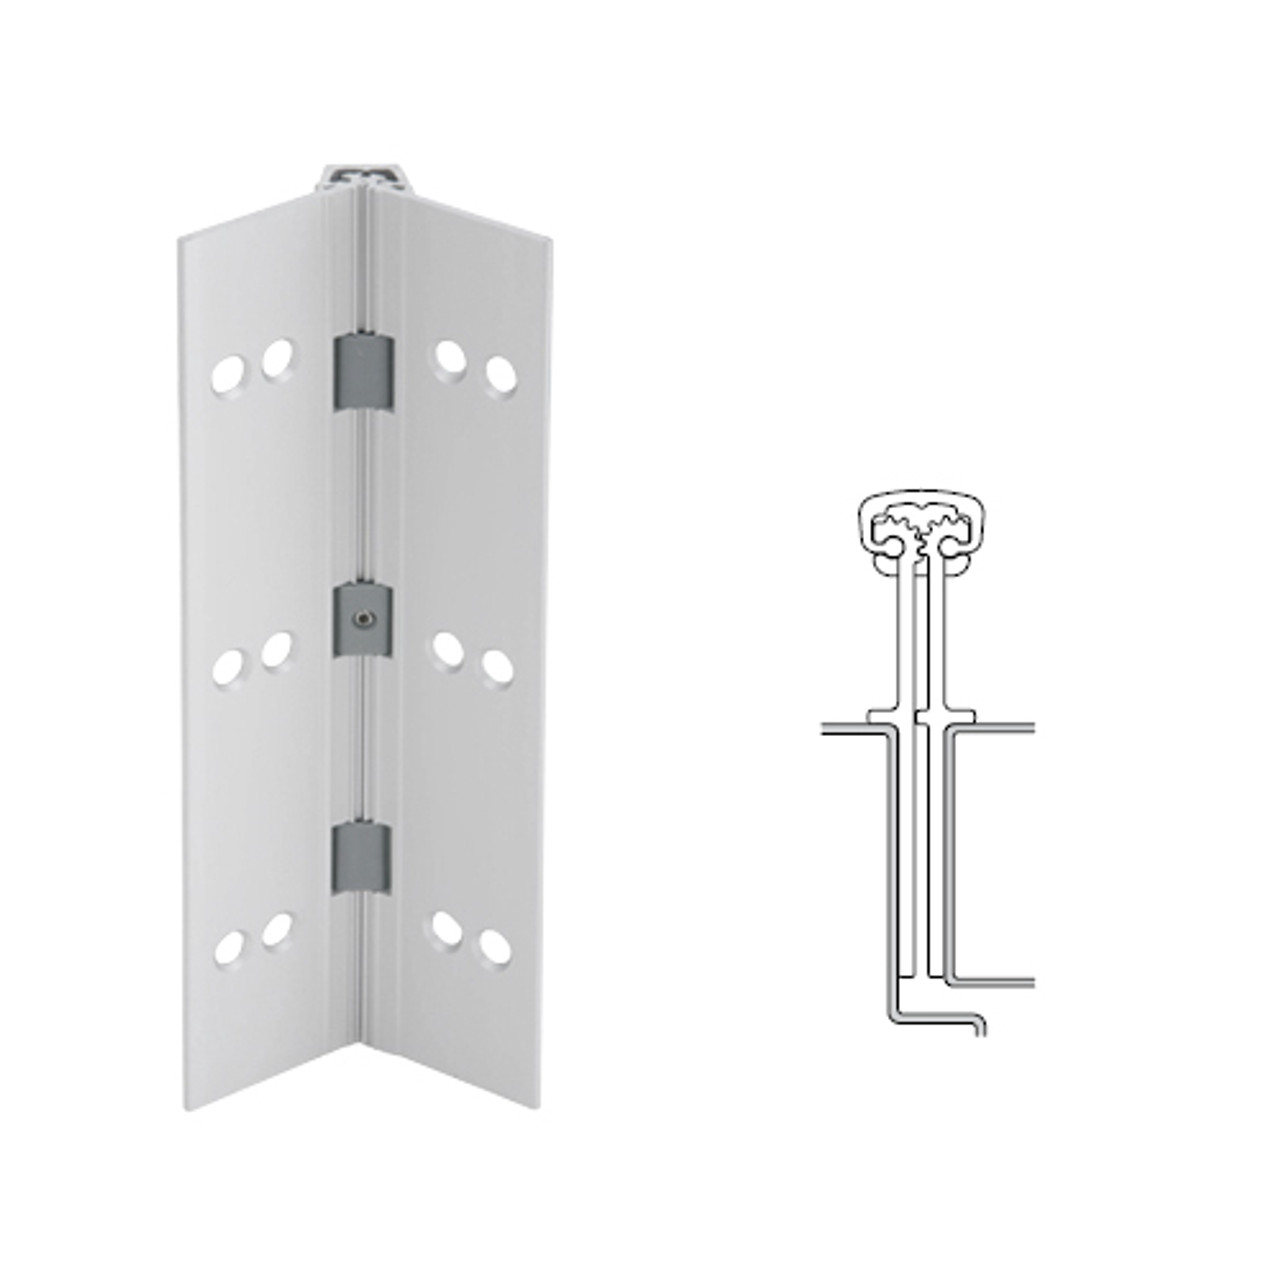 040XY-US28-95-SECWDWD IVES Full Mortise Continuous Geared Hinges with Security Screws - Hex Pin Drive in Satin Aluminum